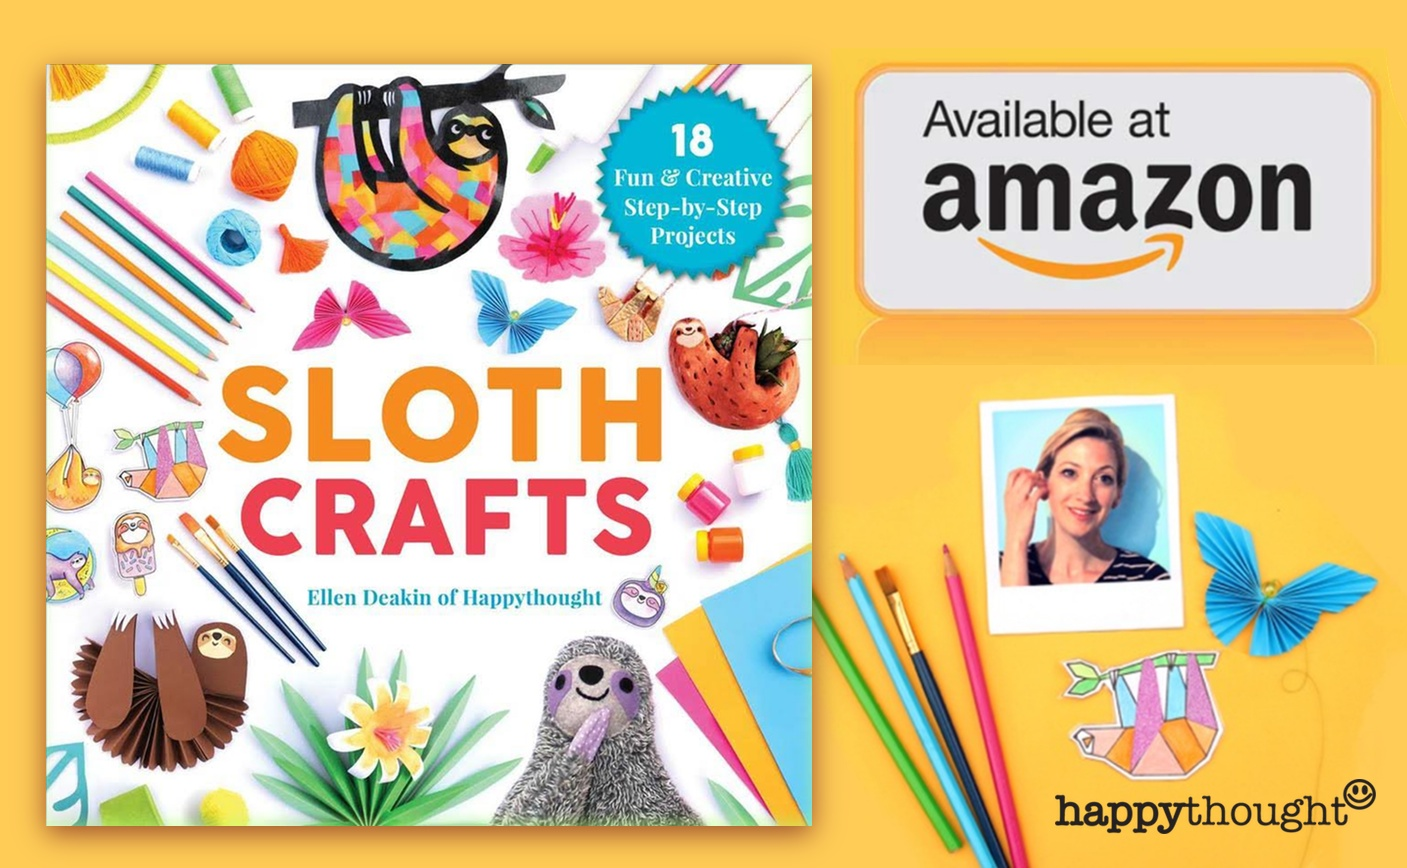 Sloth crafts by Ellen Deakin Happythought - 18 fun and creative step-by-step projects